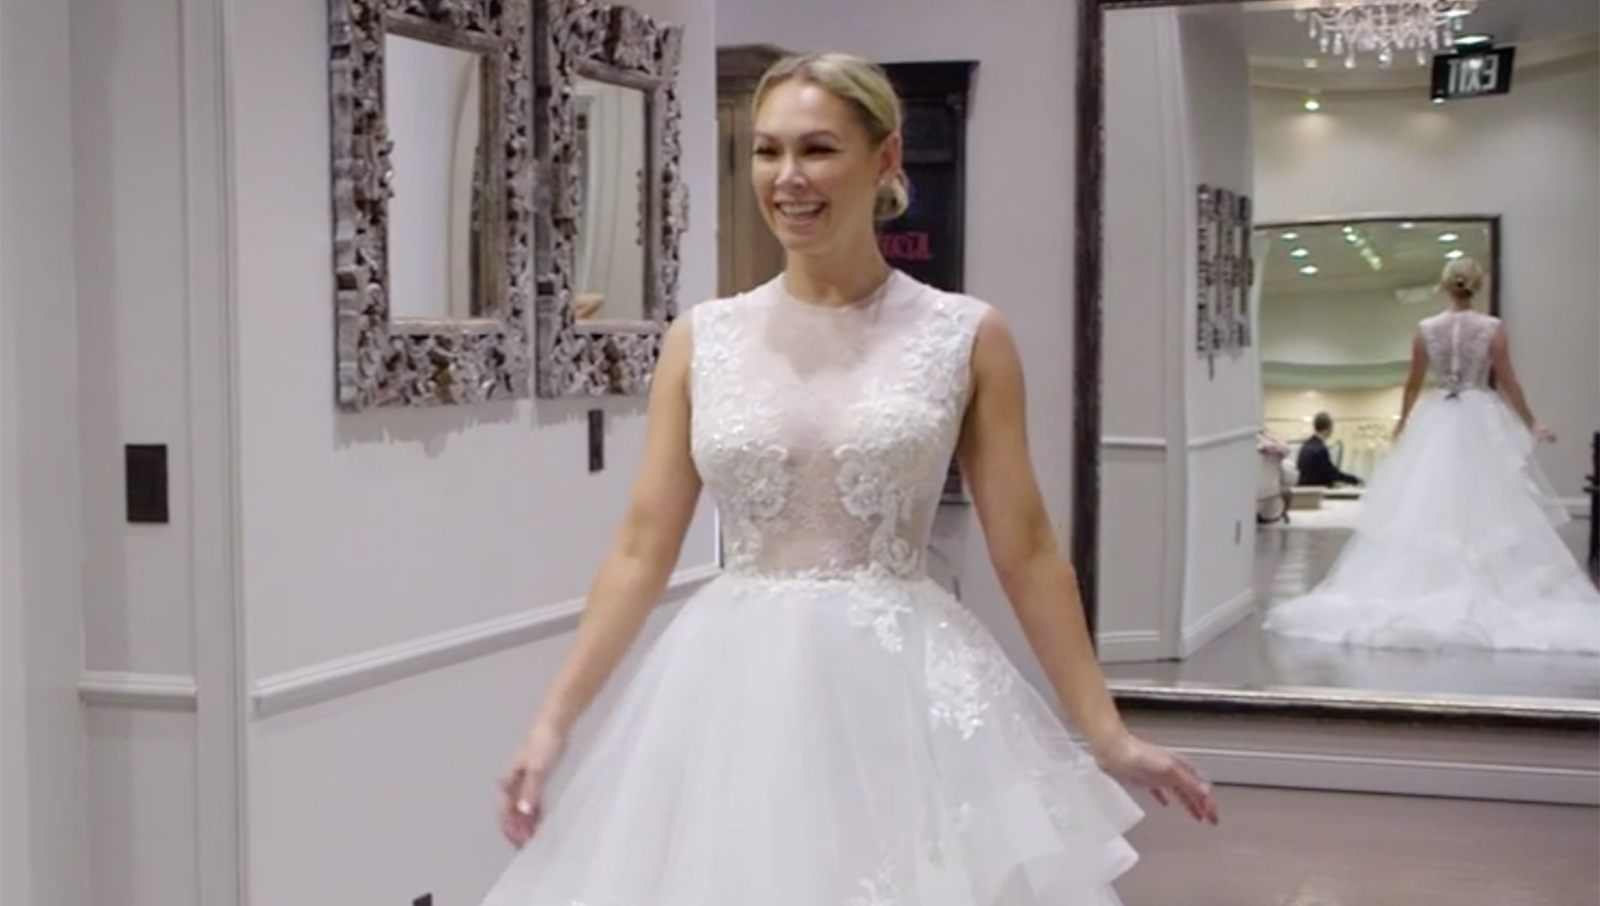 39 dwts 39 star kym johnson goes wedding gown shopping with a for Shark tank wedding dress